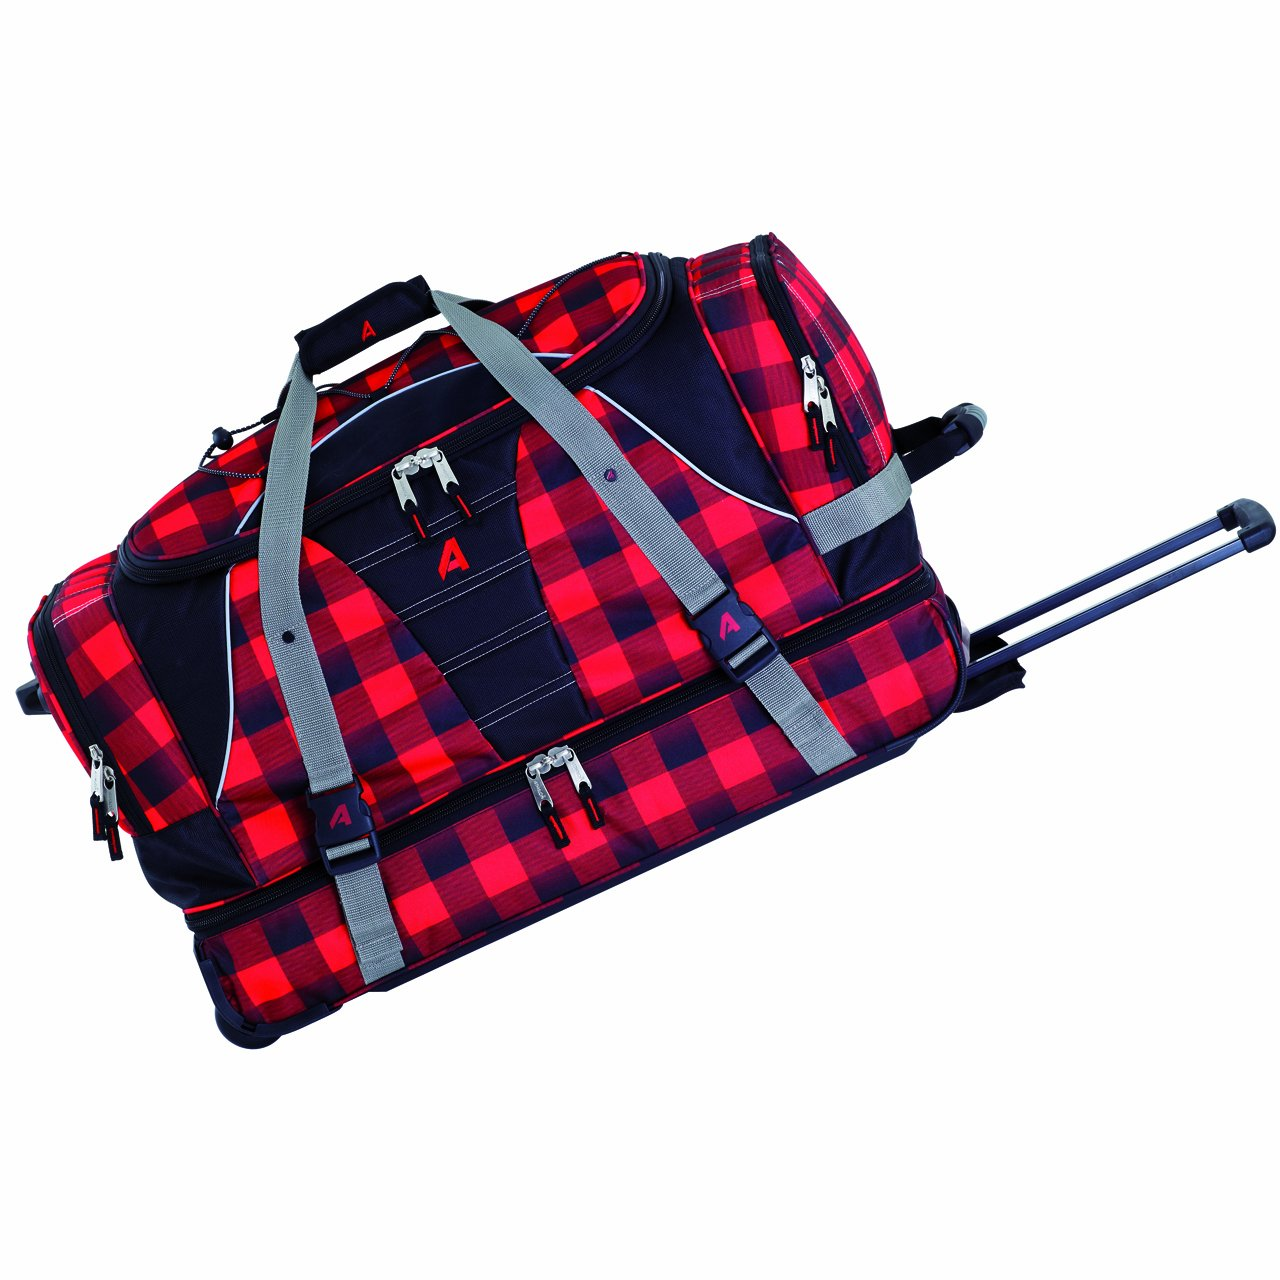 Athalon Luggage 29 inch Over Under Duffel, Lumberjack, One Size